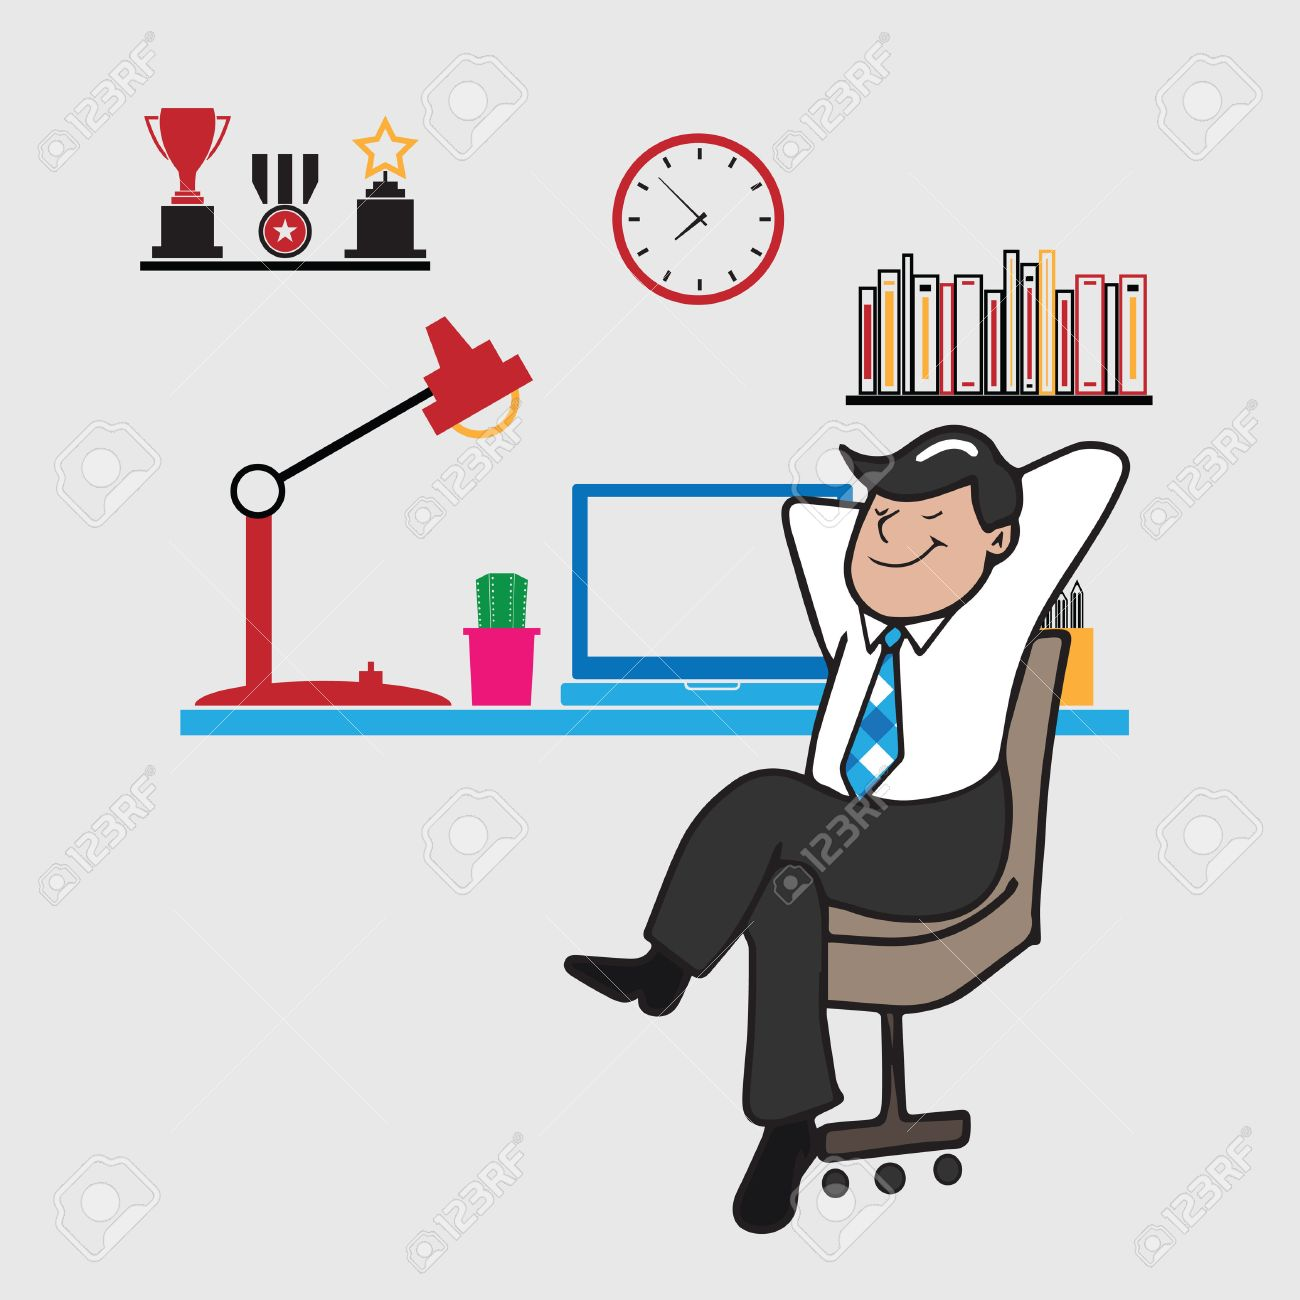 Man Sits Relaxing In Office Cartoon Vector Royalty Free Cliparts